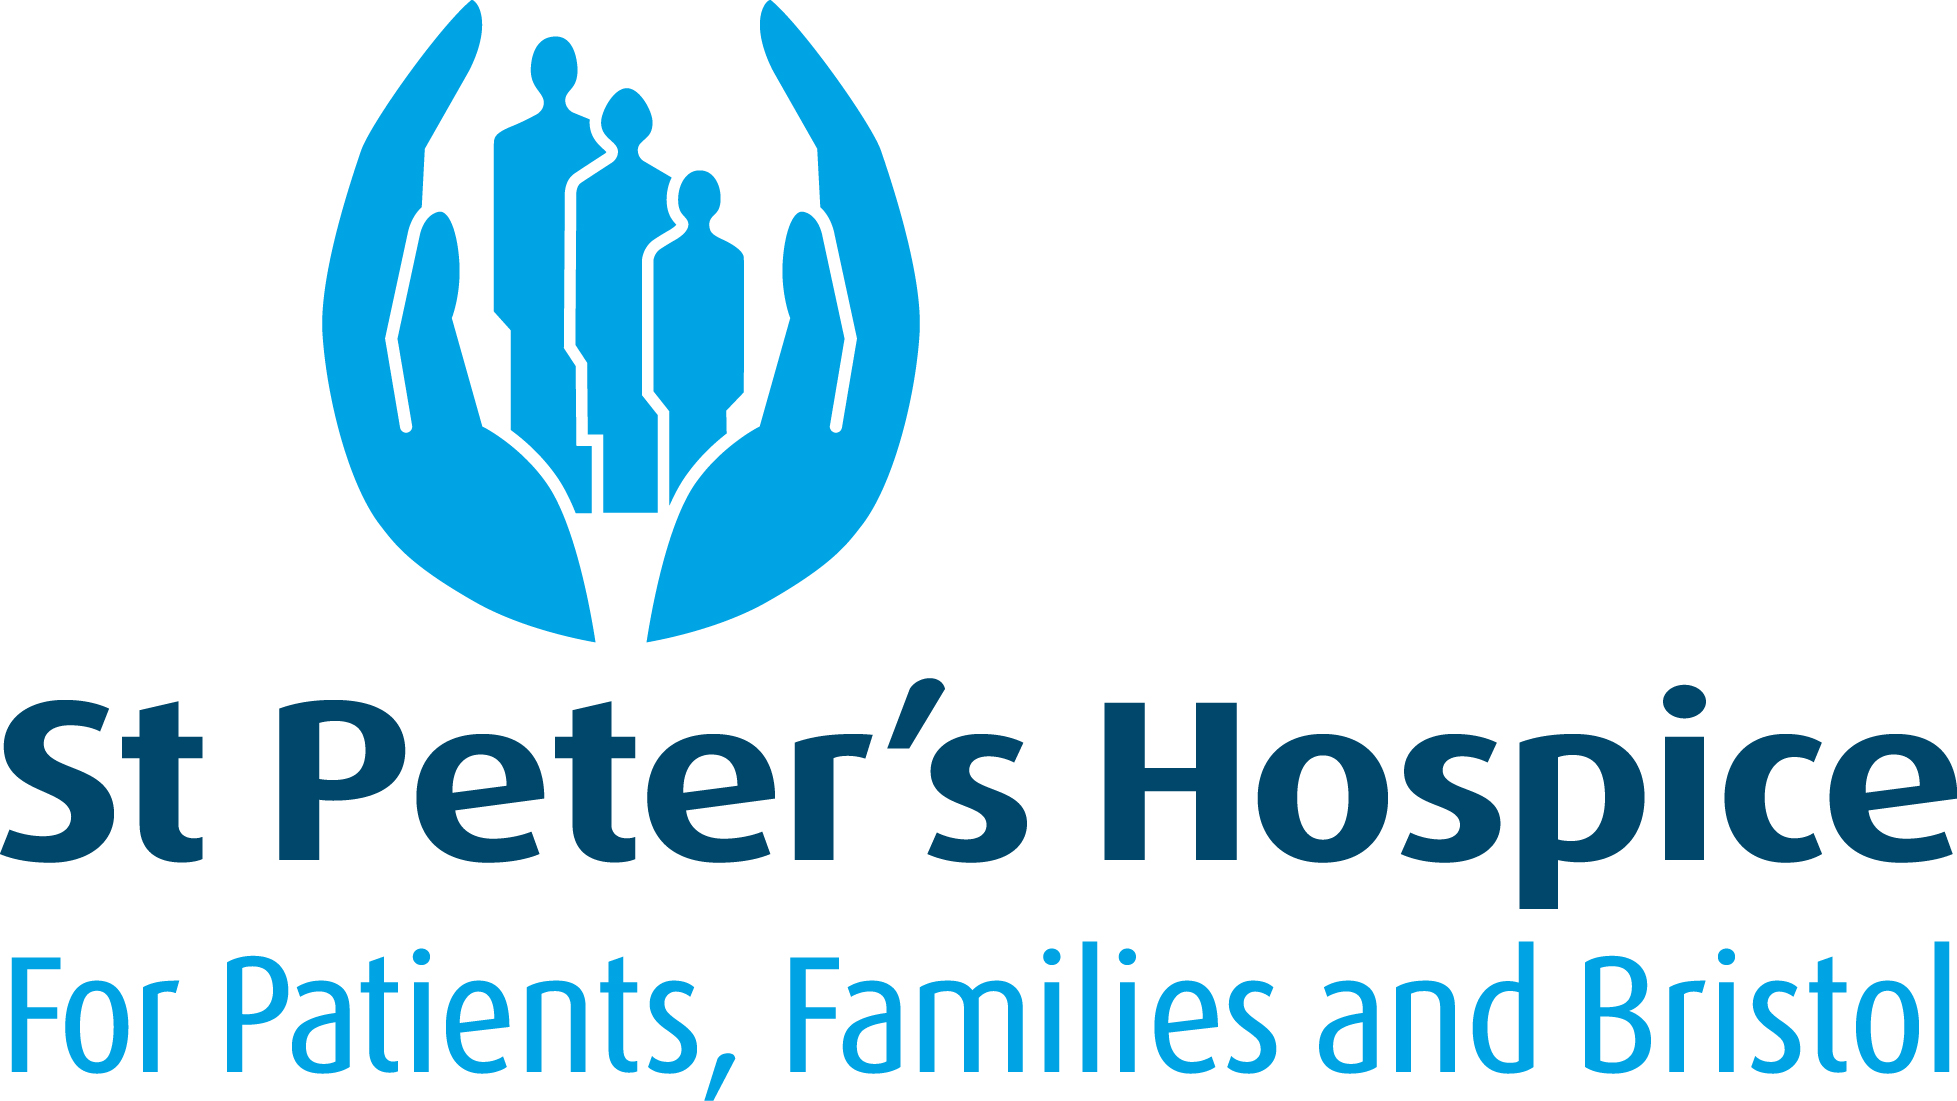 St Peters Hospice